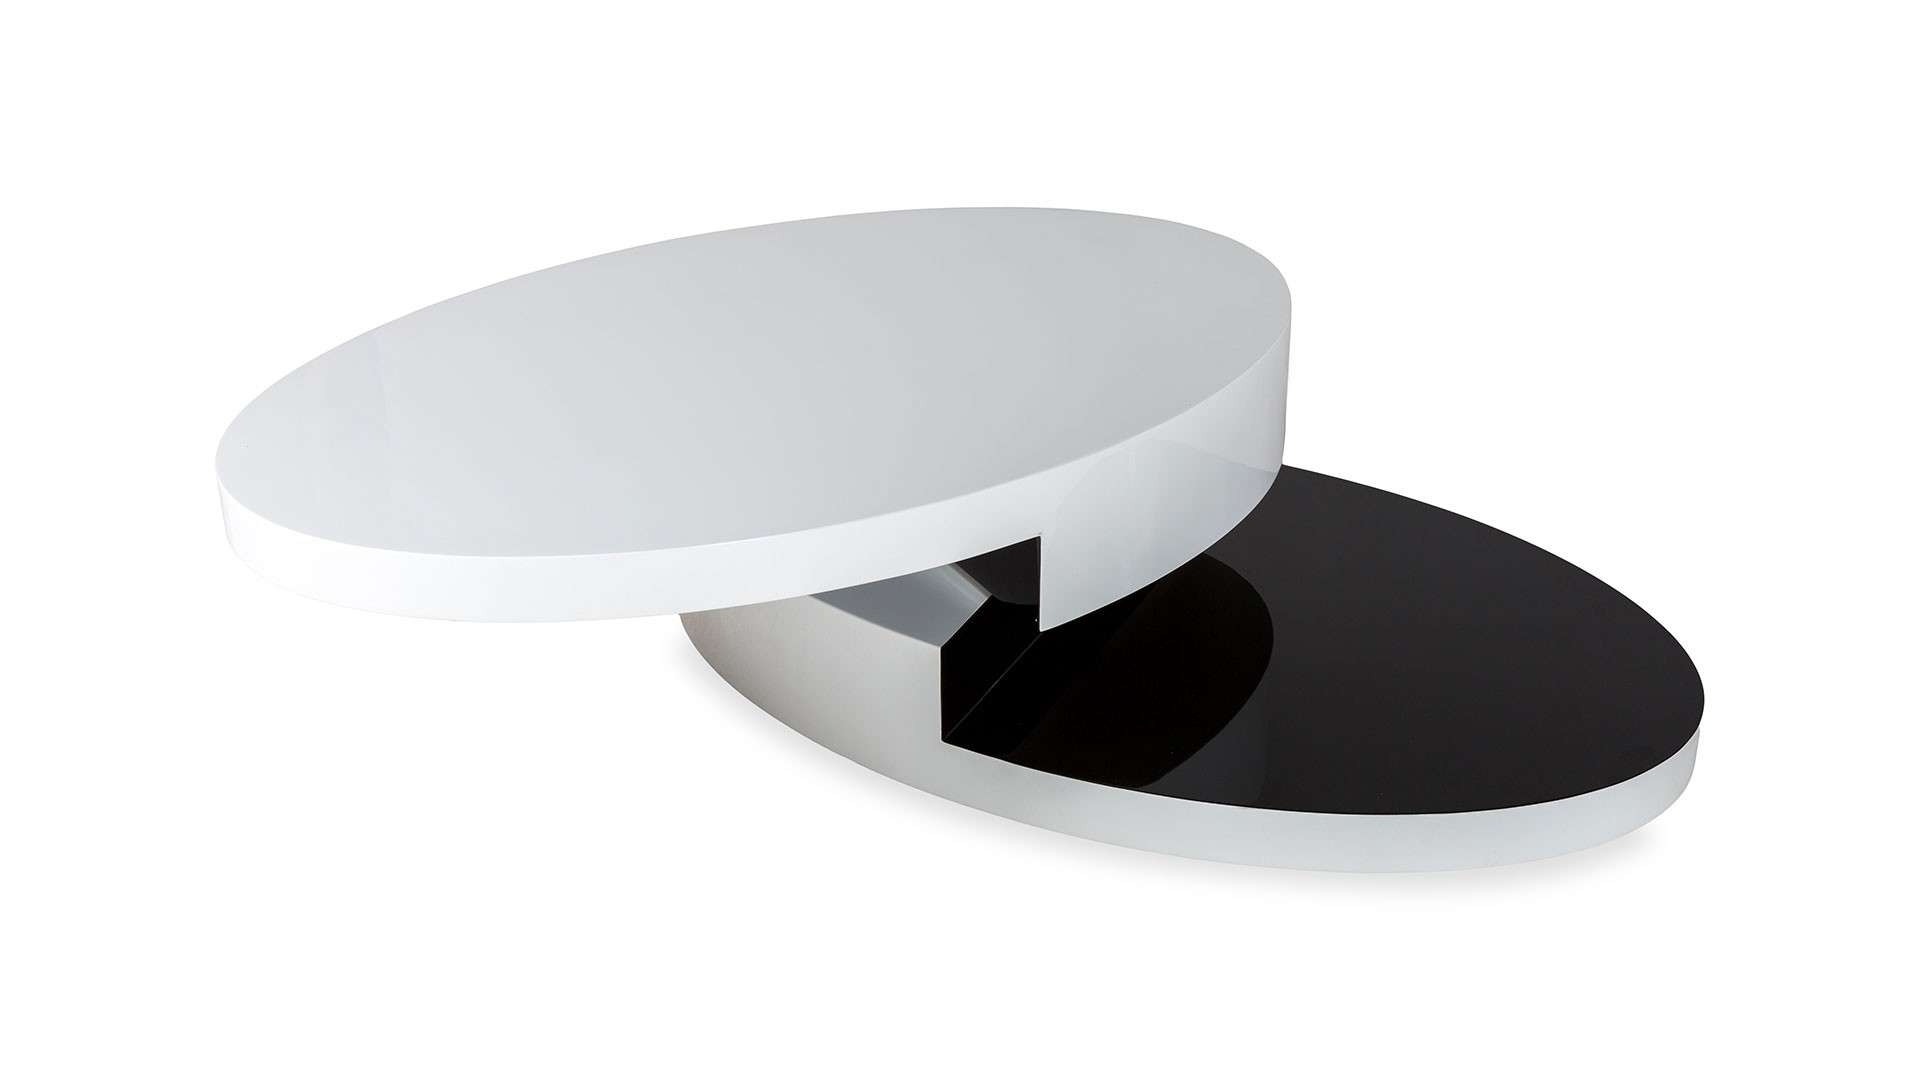 High Gloss White And Black Oval Coffee Table Worcester Inside 2018 Black Oval Coffee Table (View 10 of 20)